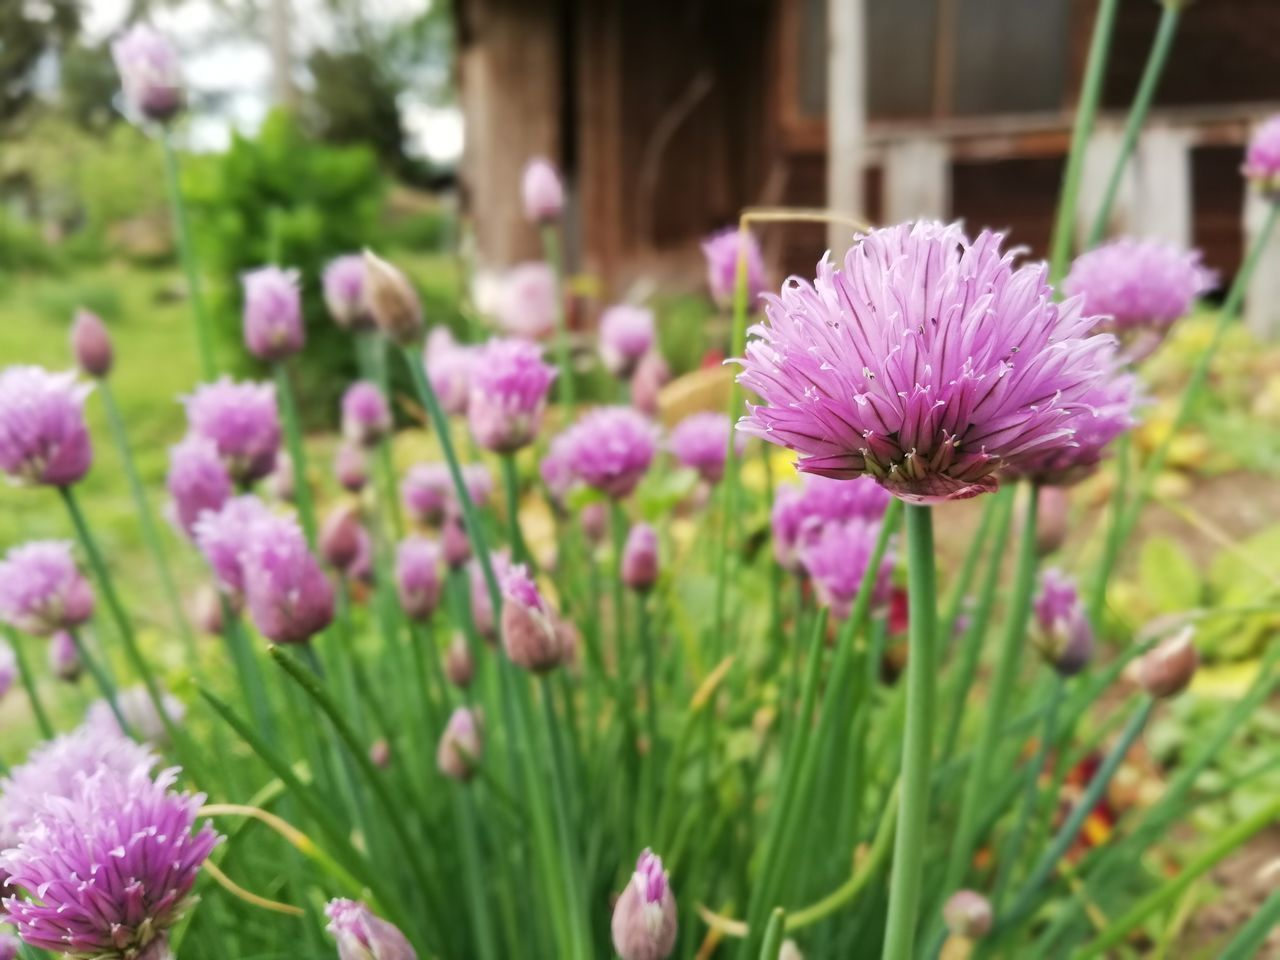 flowering plant, flower, plant, vulnerability, freshness, fragility, beauty in nature, growth, petal, close-up, pink color, inflorescence, flower head, purple, nature, no people, focus on foreground, field, day, land, springtime, outdoors